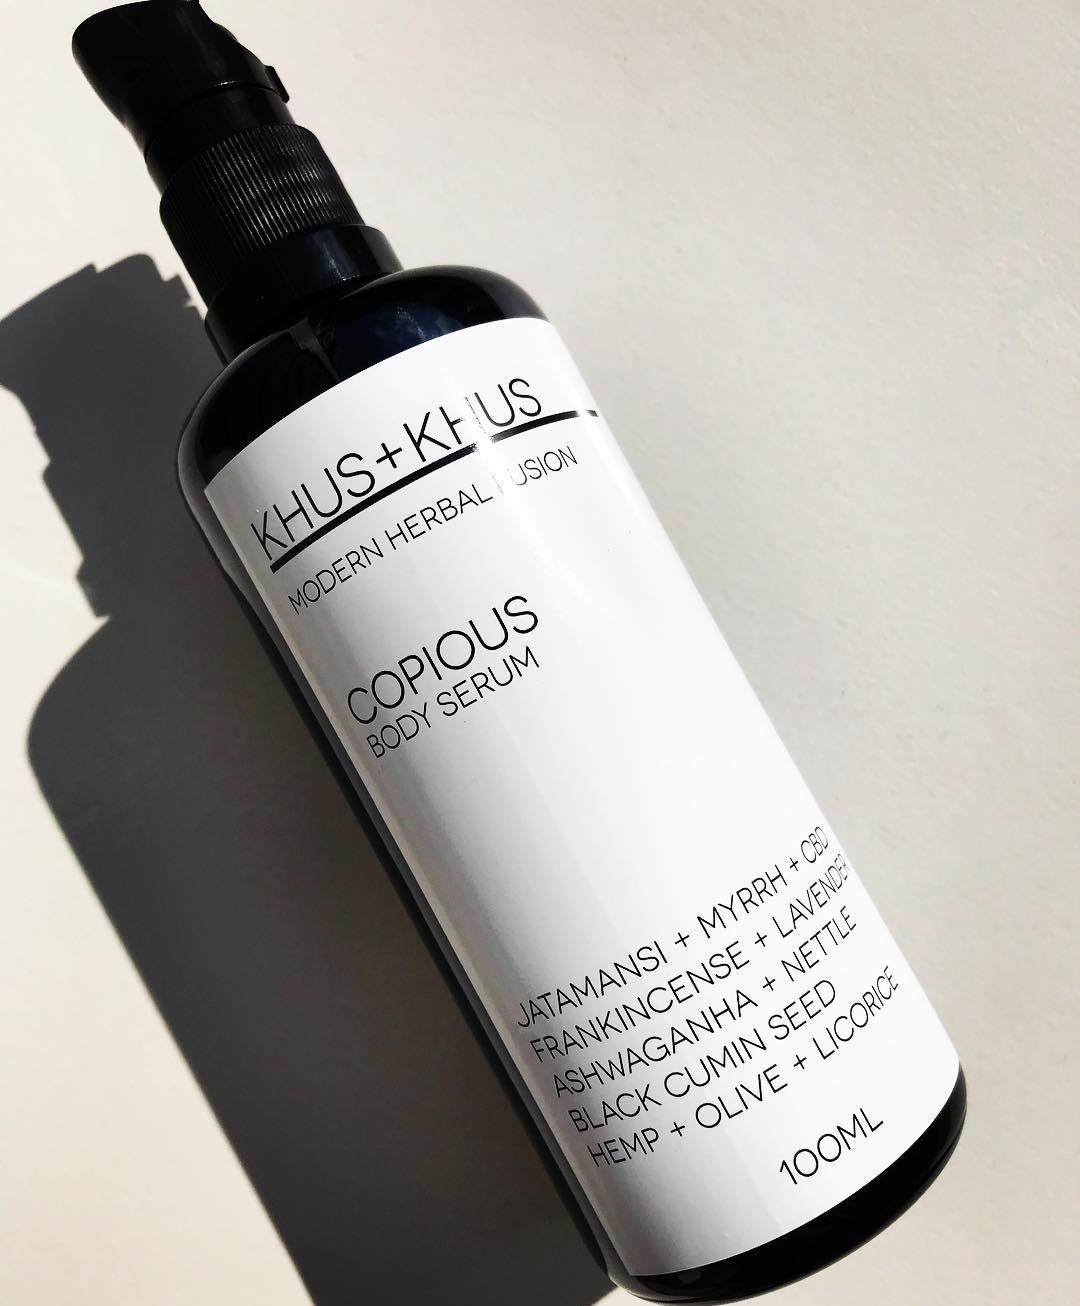 A black pump bottle with a white label of Khus + Khus Copious Body Serum